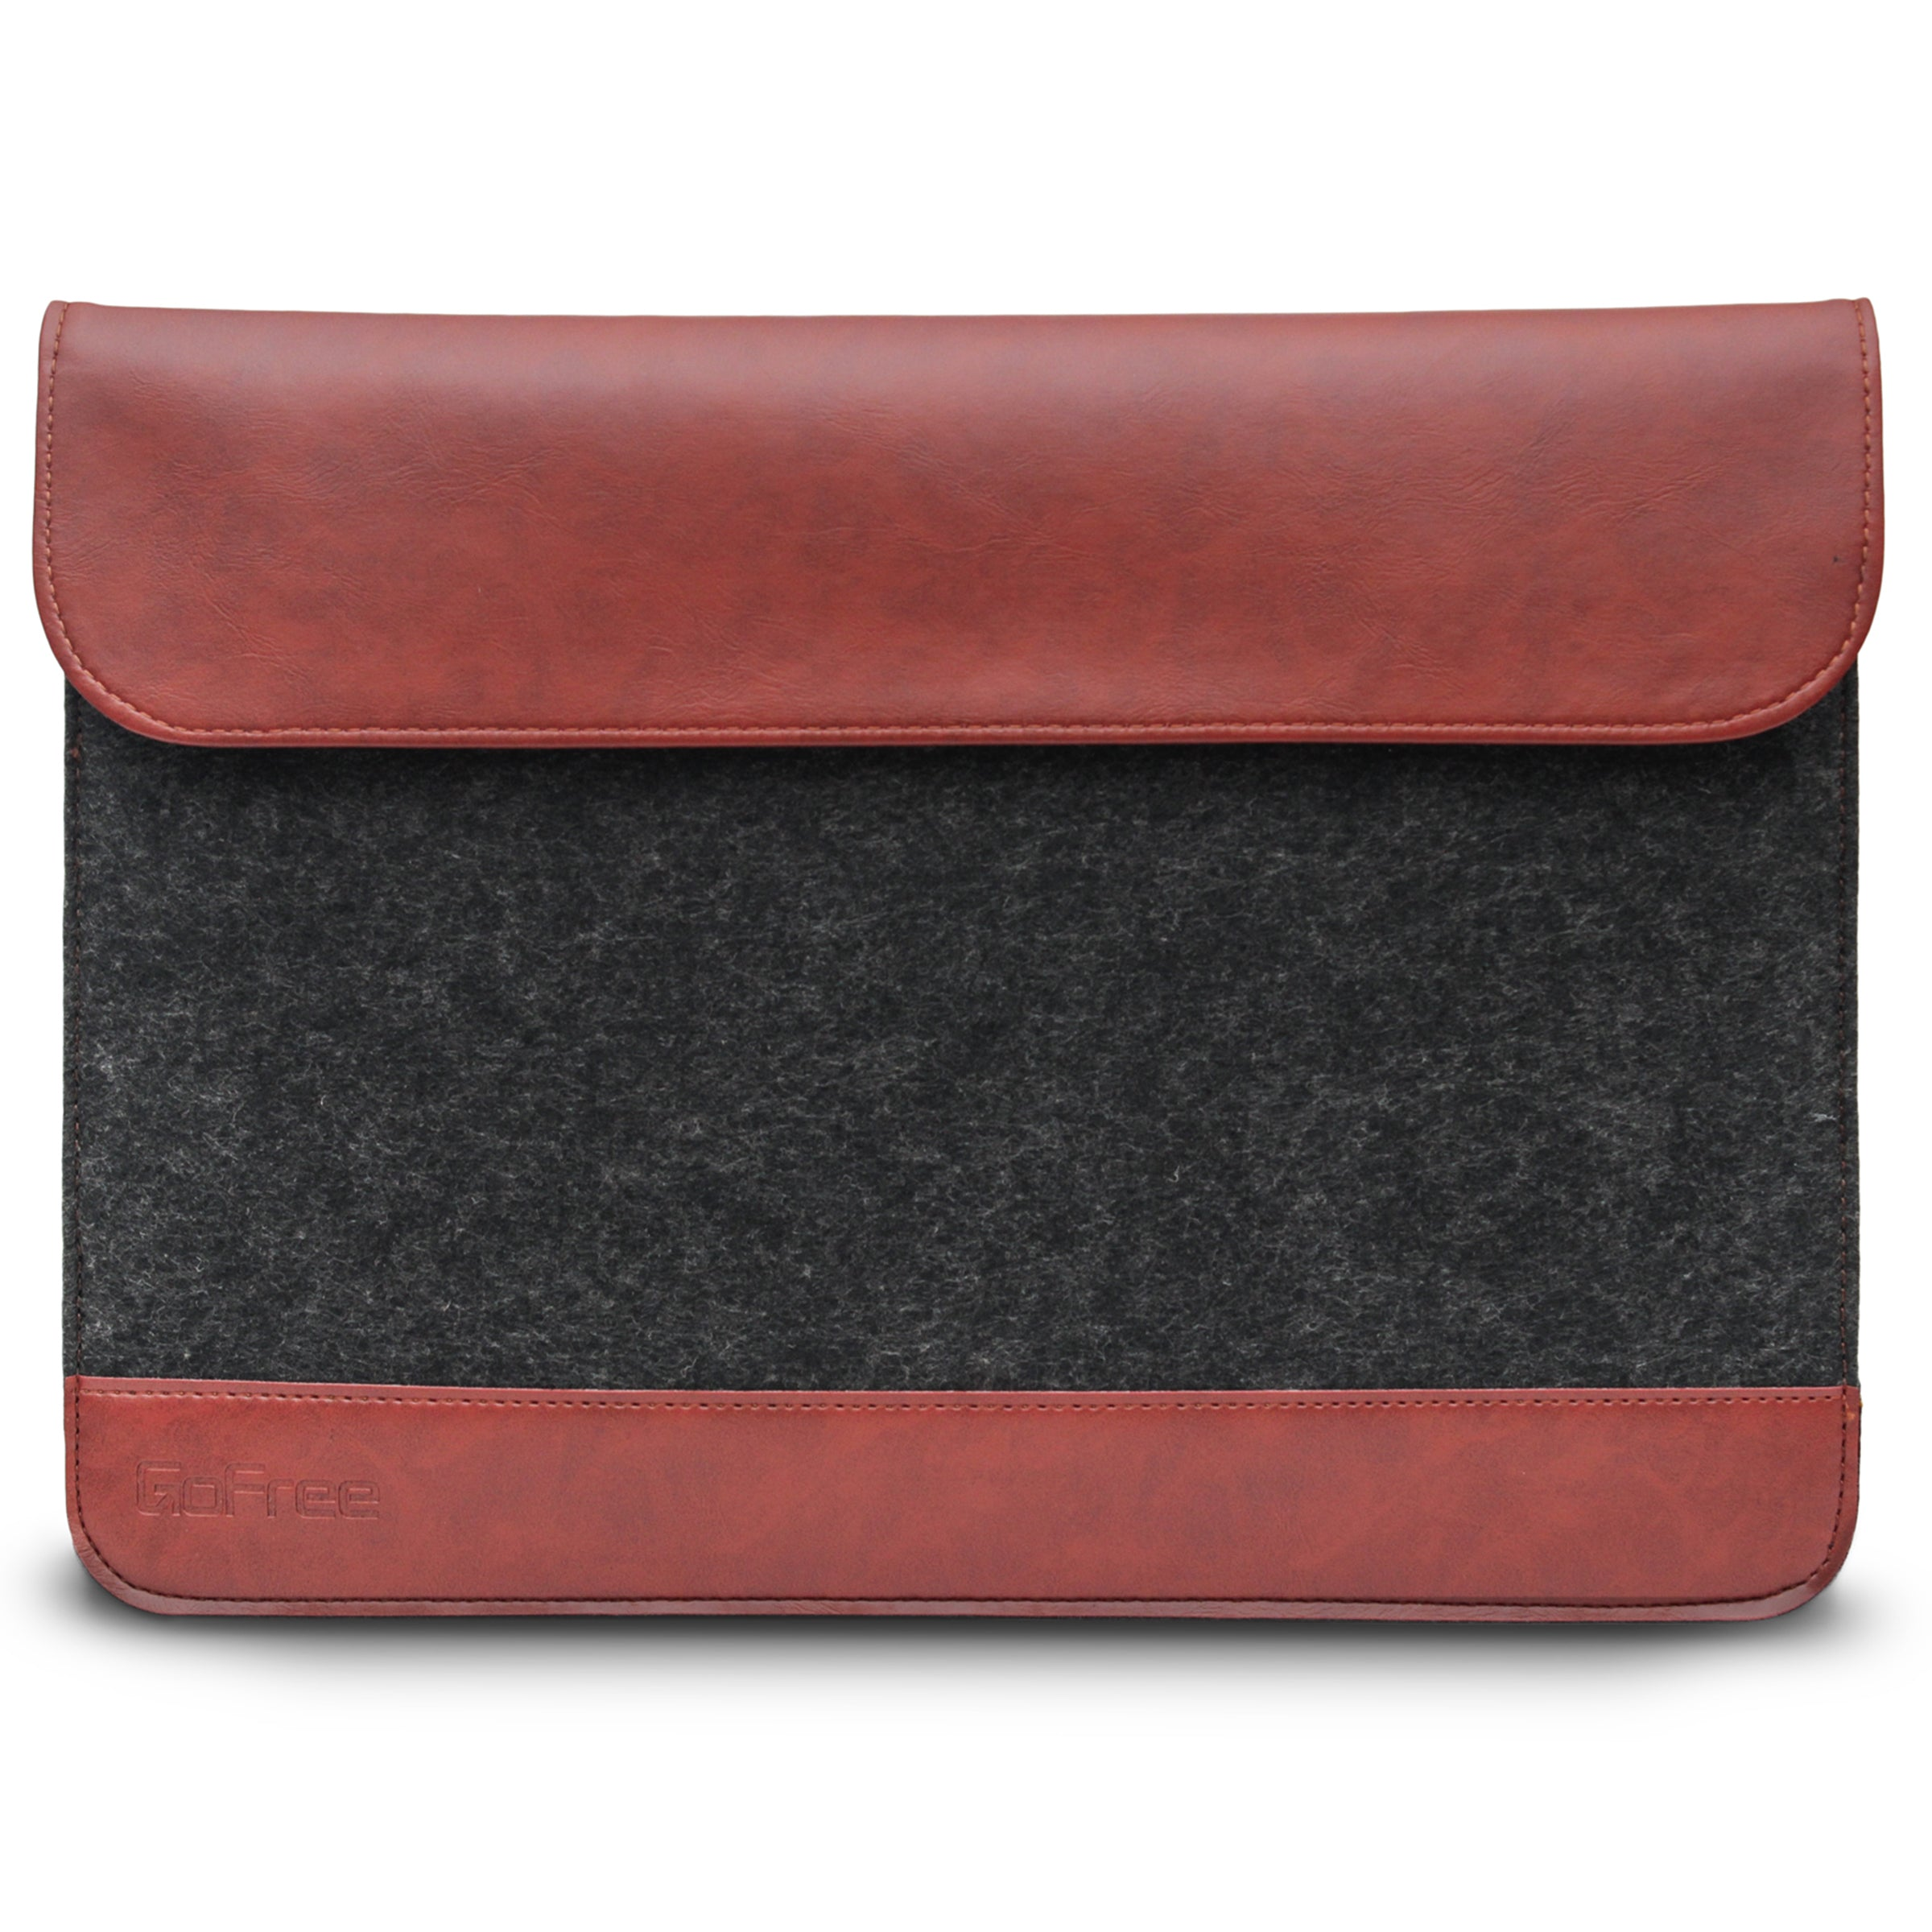 GoFree Felt Sleeve Case for iPad Mini (All Generations) / 8 & 7 inch Tablets  (Charcoal Grey / Caramel Brown)